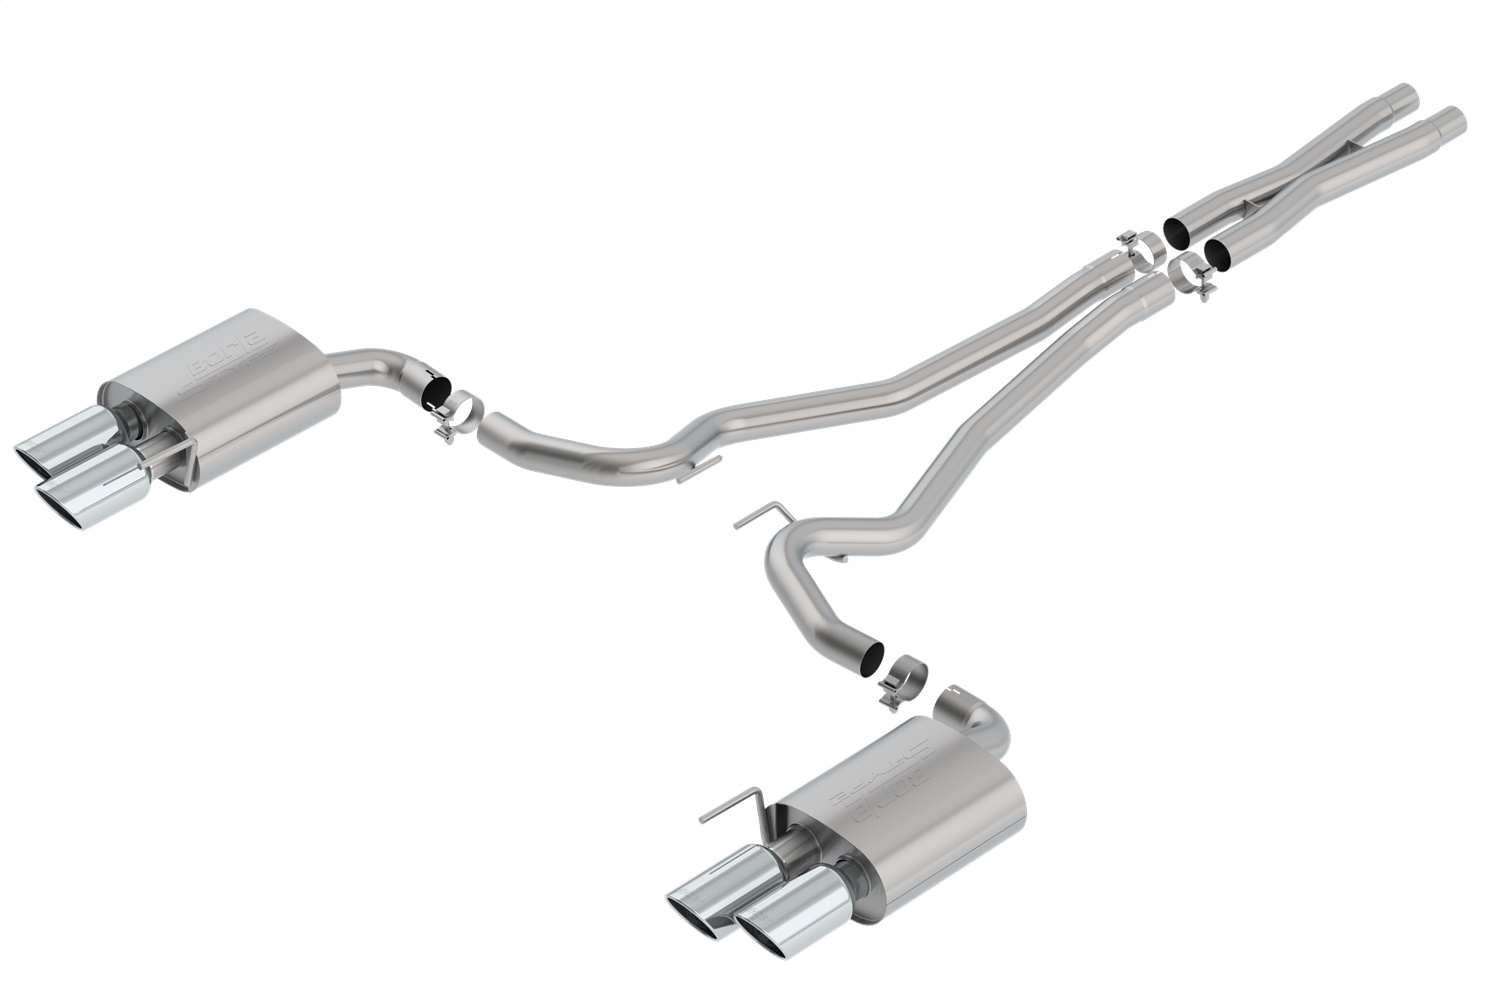 Borla 140807 S-Type Cat-Back Exhaust System Fits 19-20 Mustang